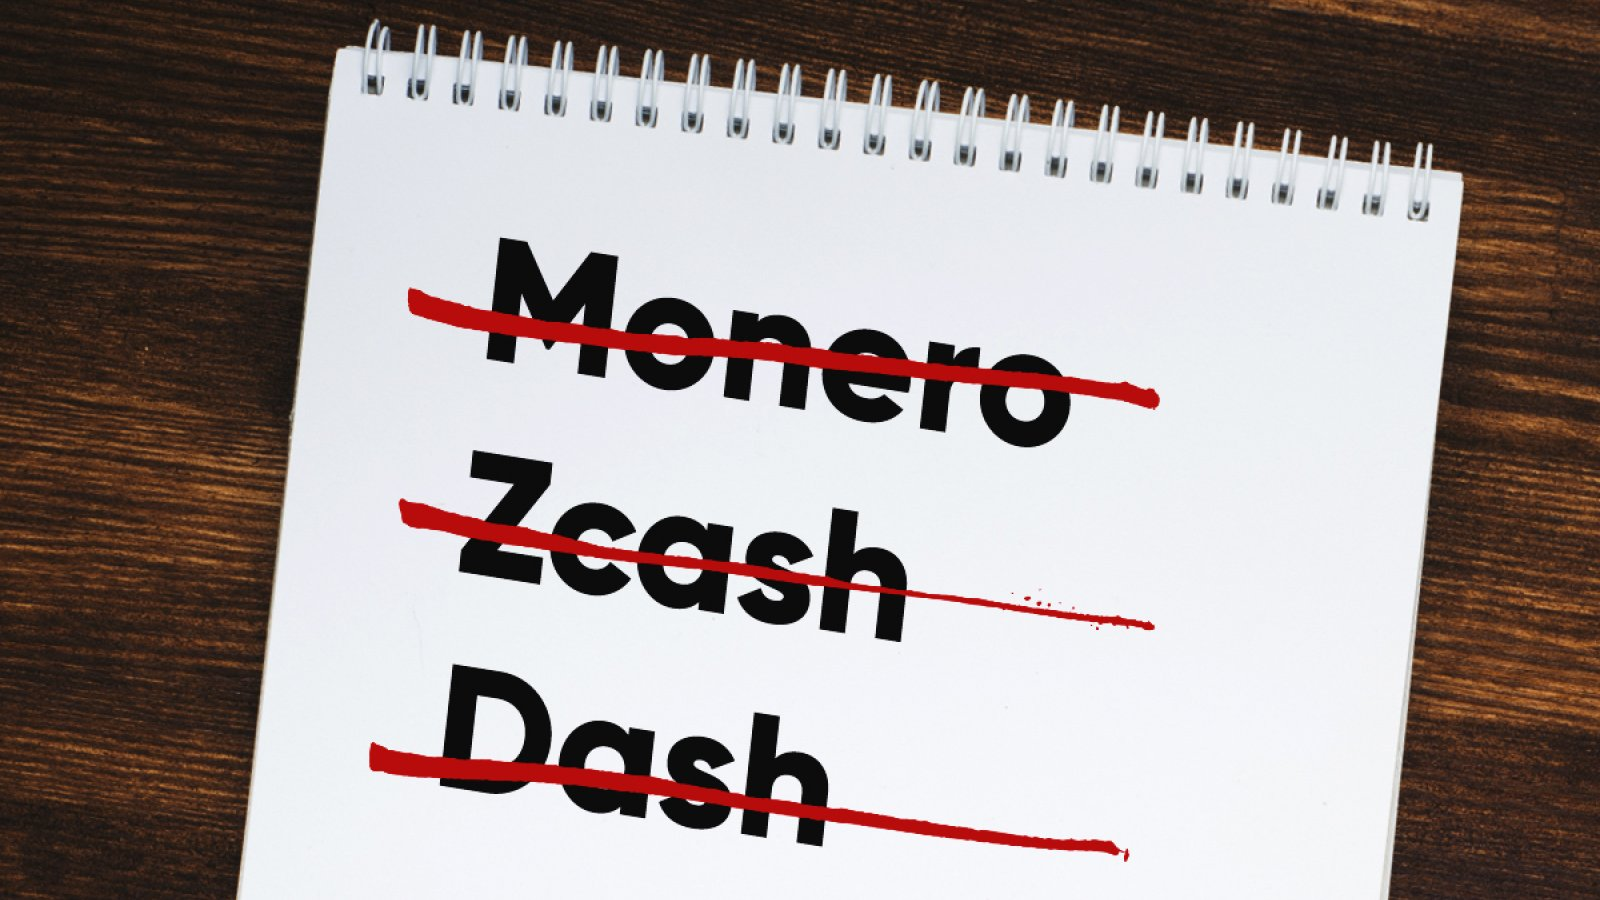 Monero_(XMR),_Zcash_(ZEC),_and_Dash_(DASH)_Might_Continue_Getting_Delisted_from_Exchanges